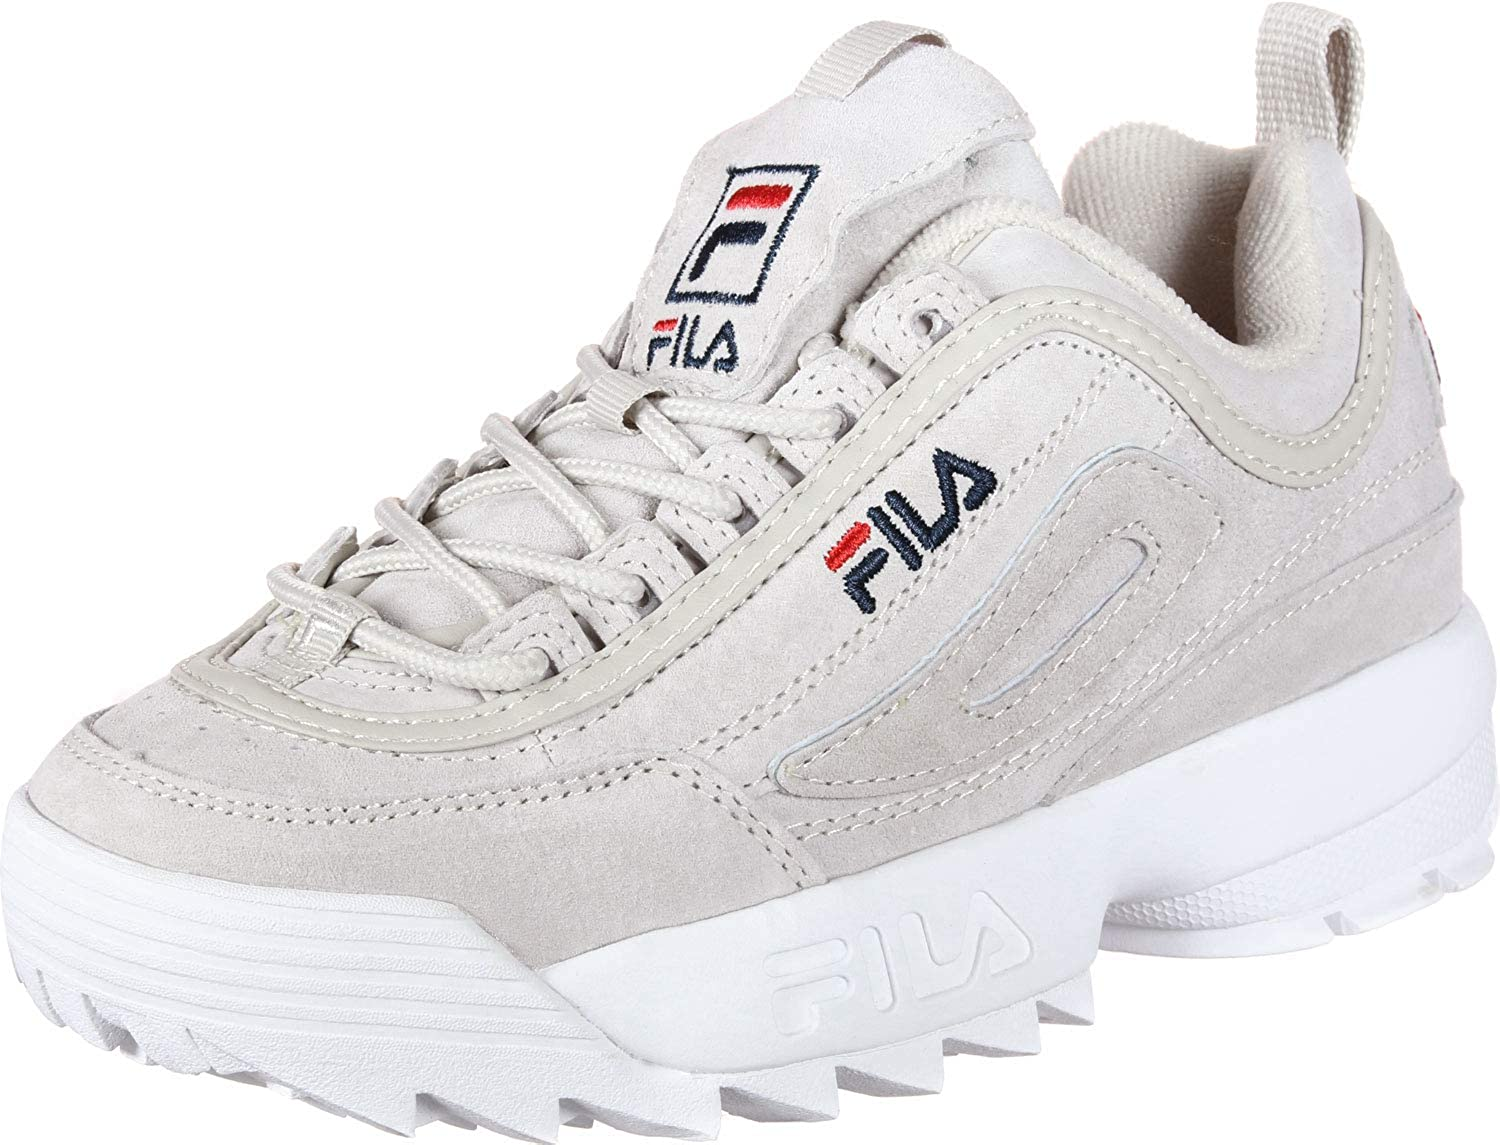 Fila Disruptor S W Shoes Chateau Gray: Amazon.co.uk: Shoes